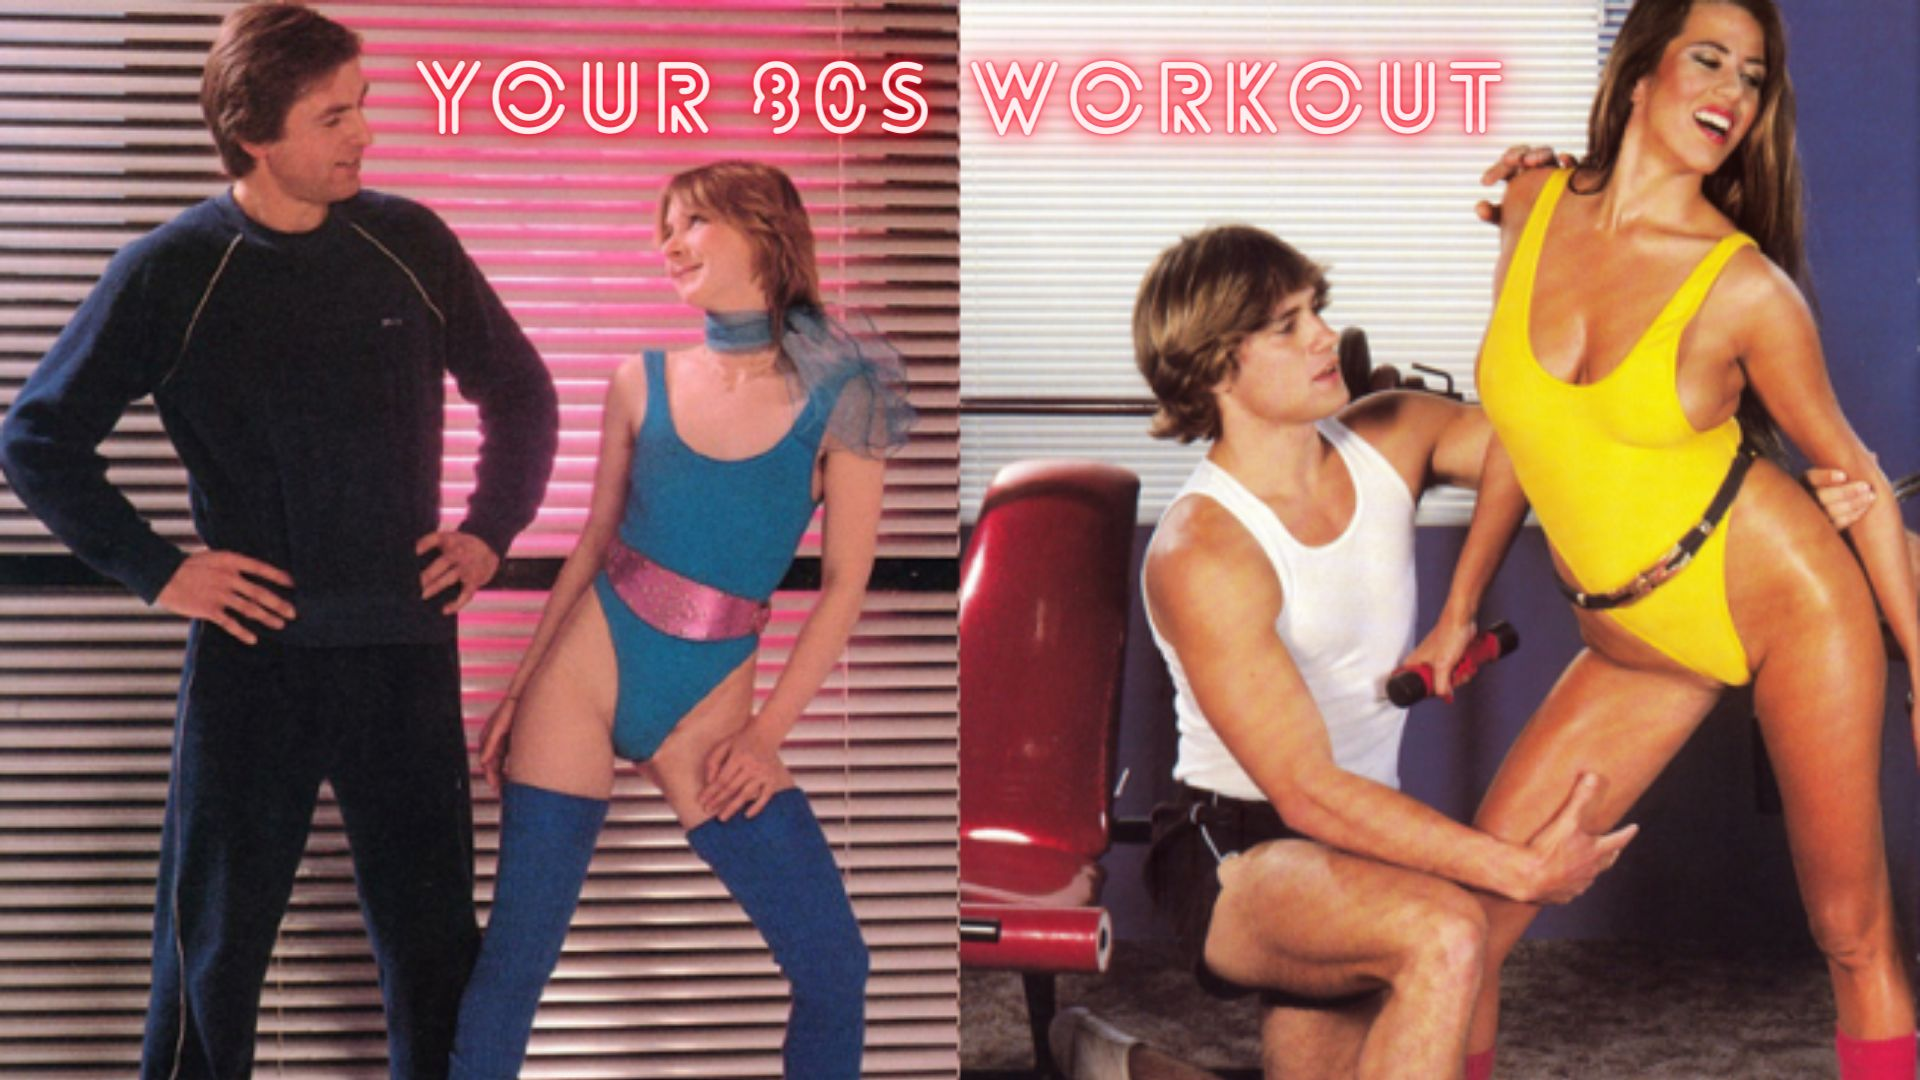 Events Wien: Your 80s Workout